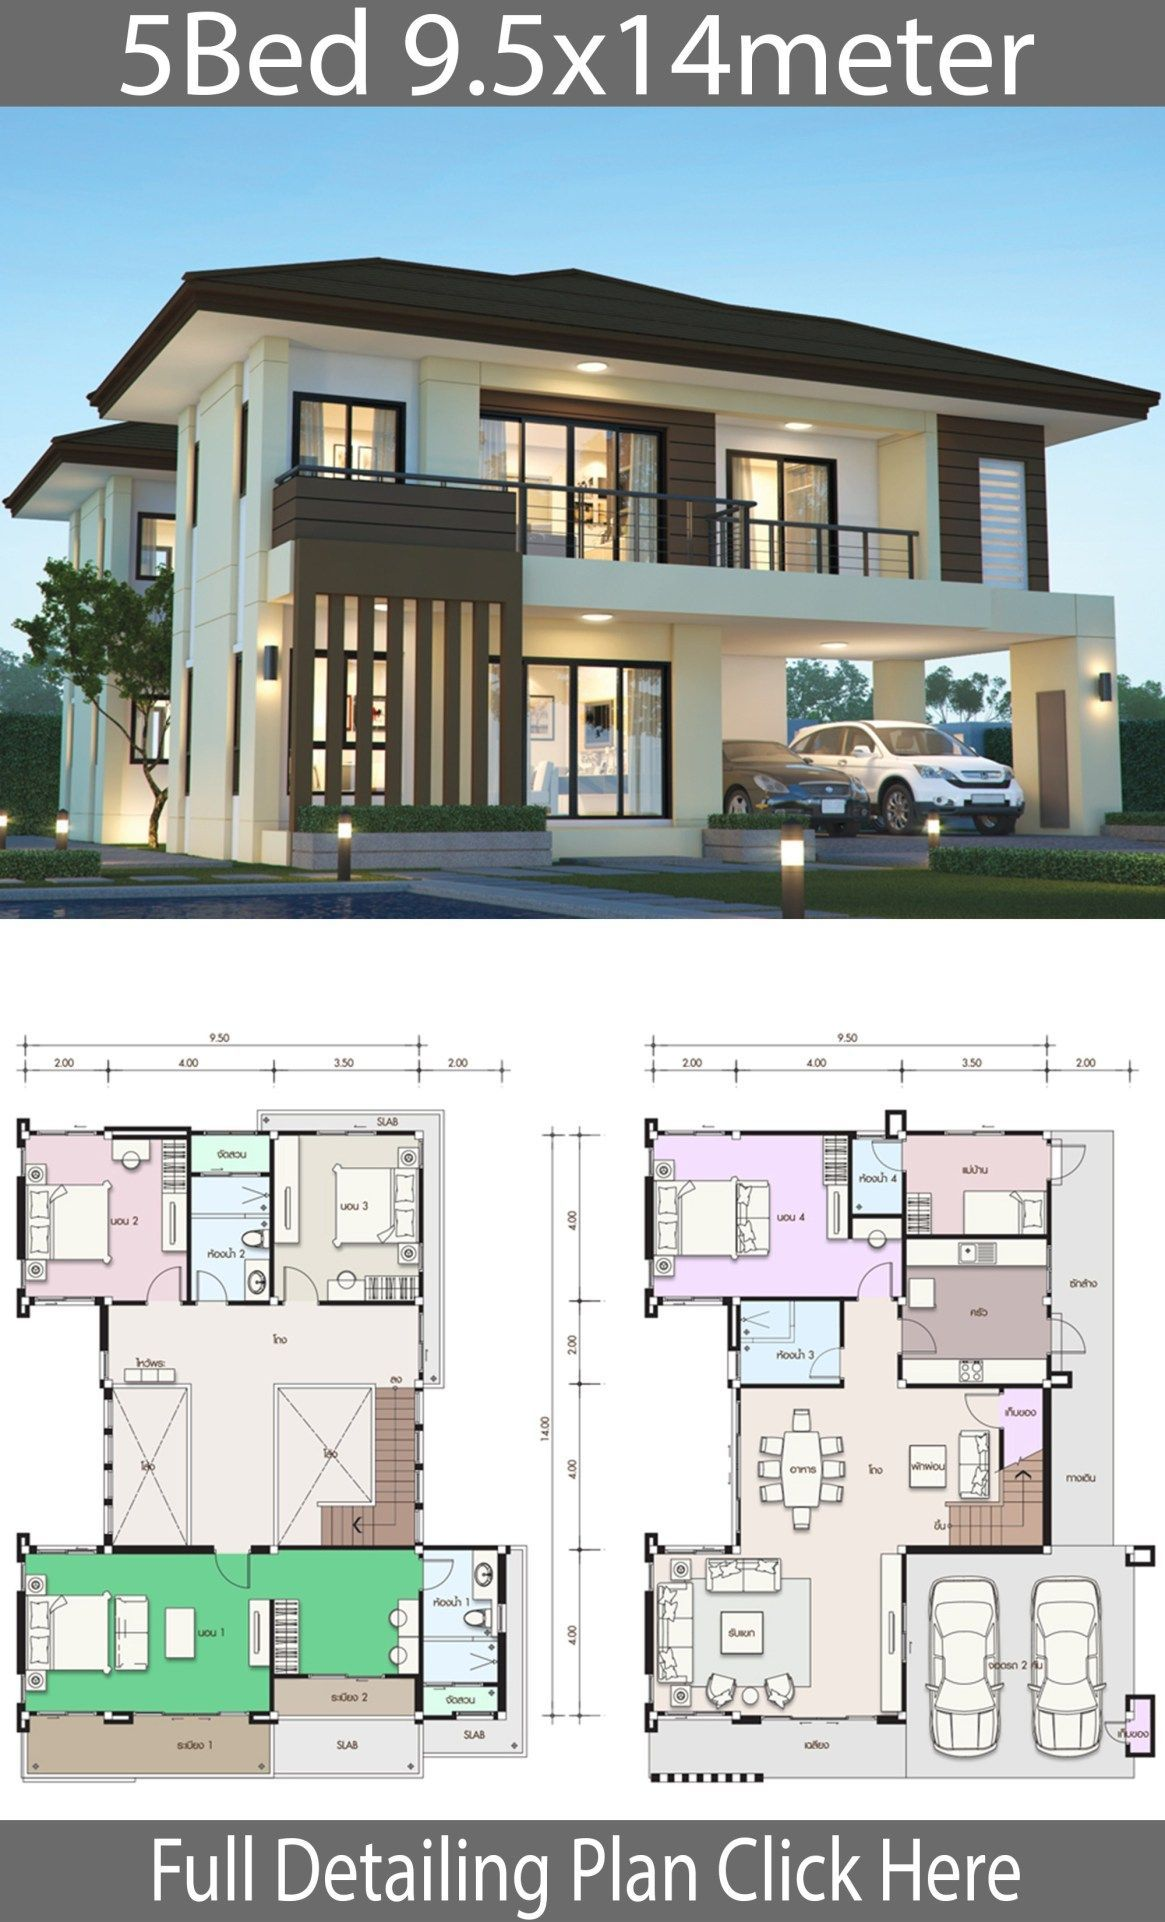 House Design Plan 9 5x14m With 5 Bedrooms In 2020 2 Storey House Design Model House Plan Affordable House Plans